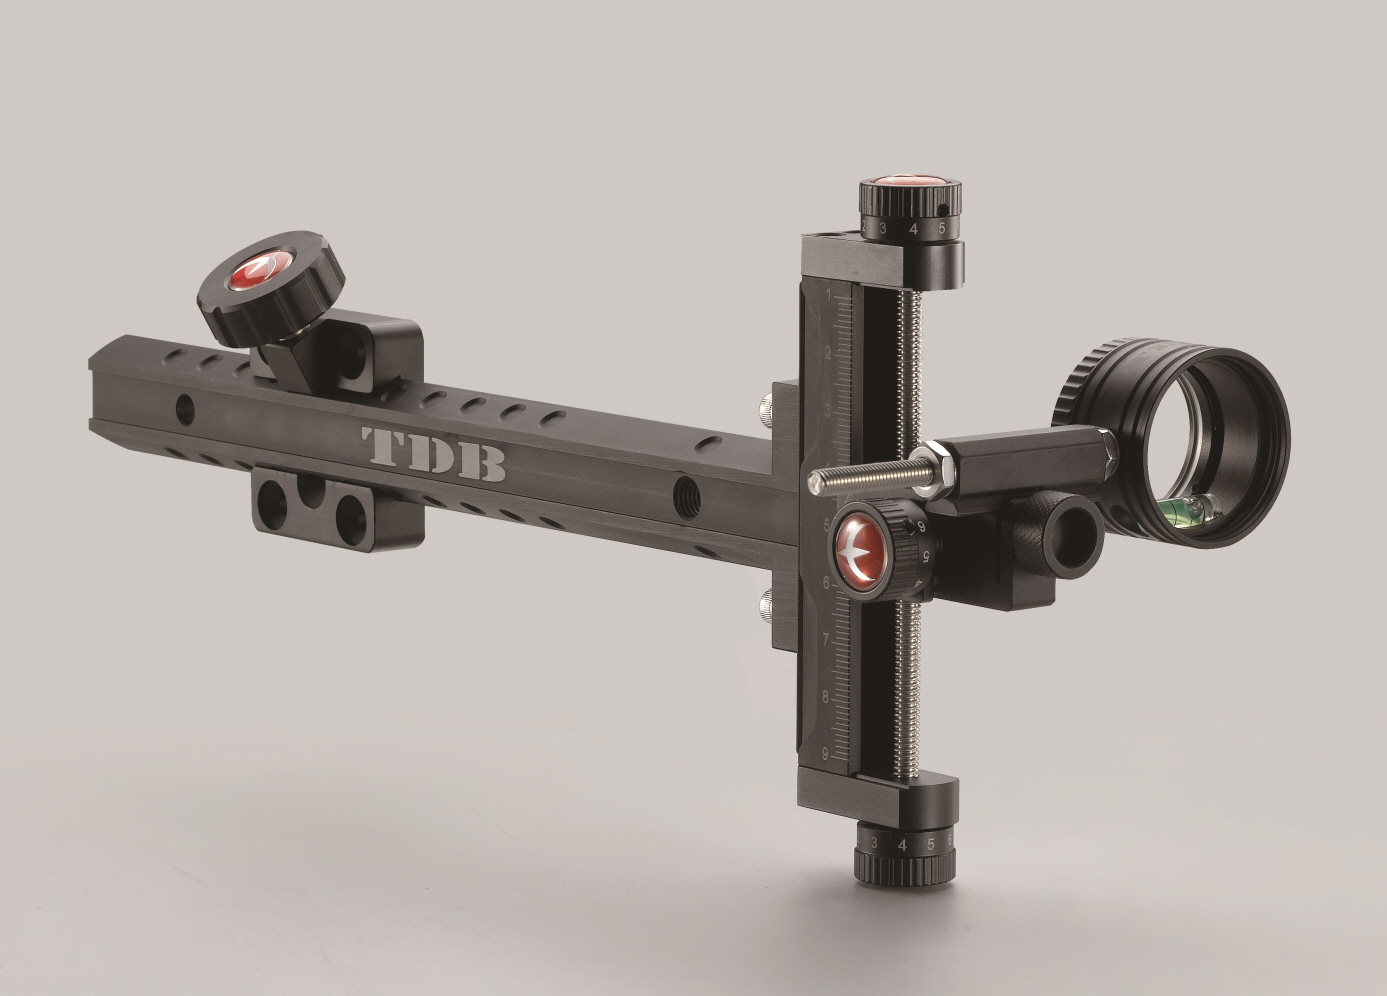 TDB Compound Bow Sight